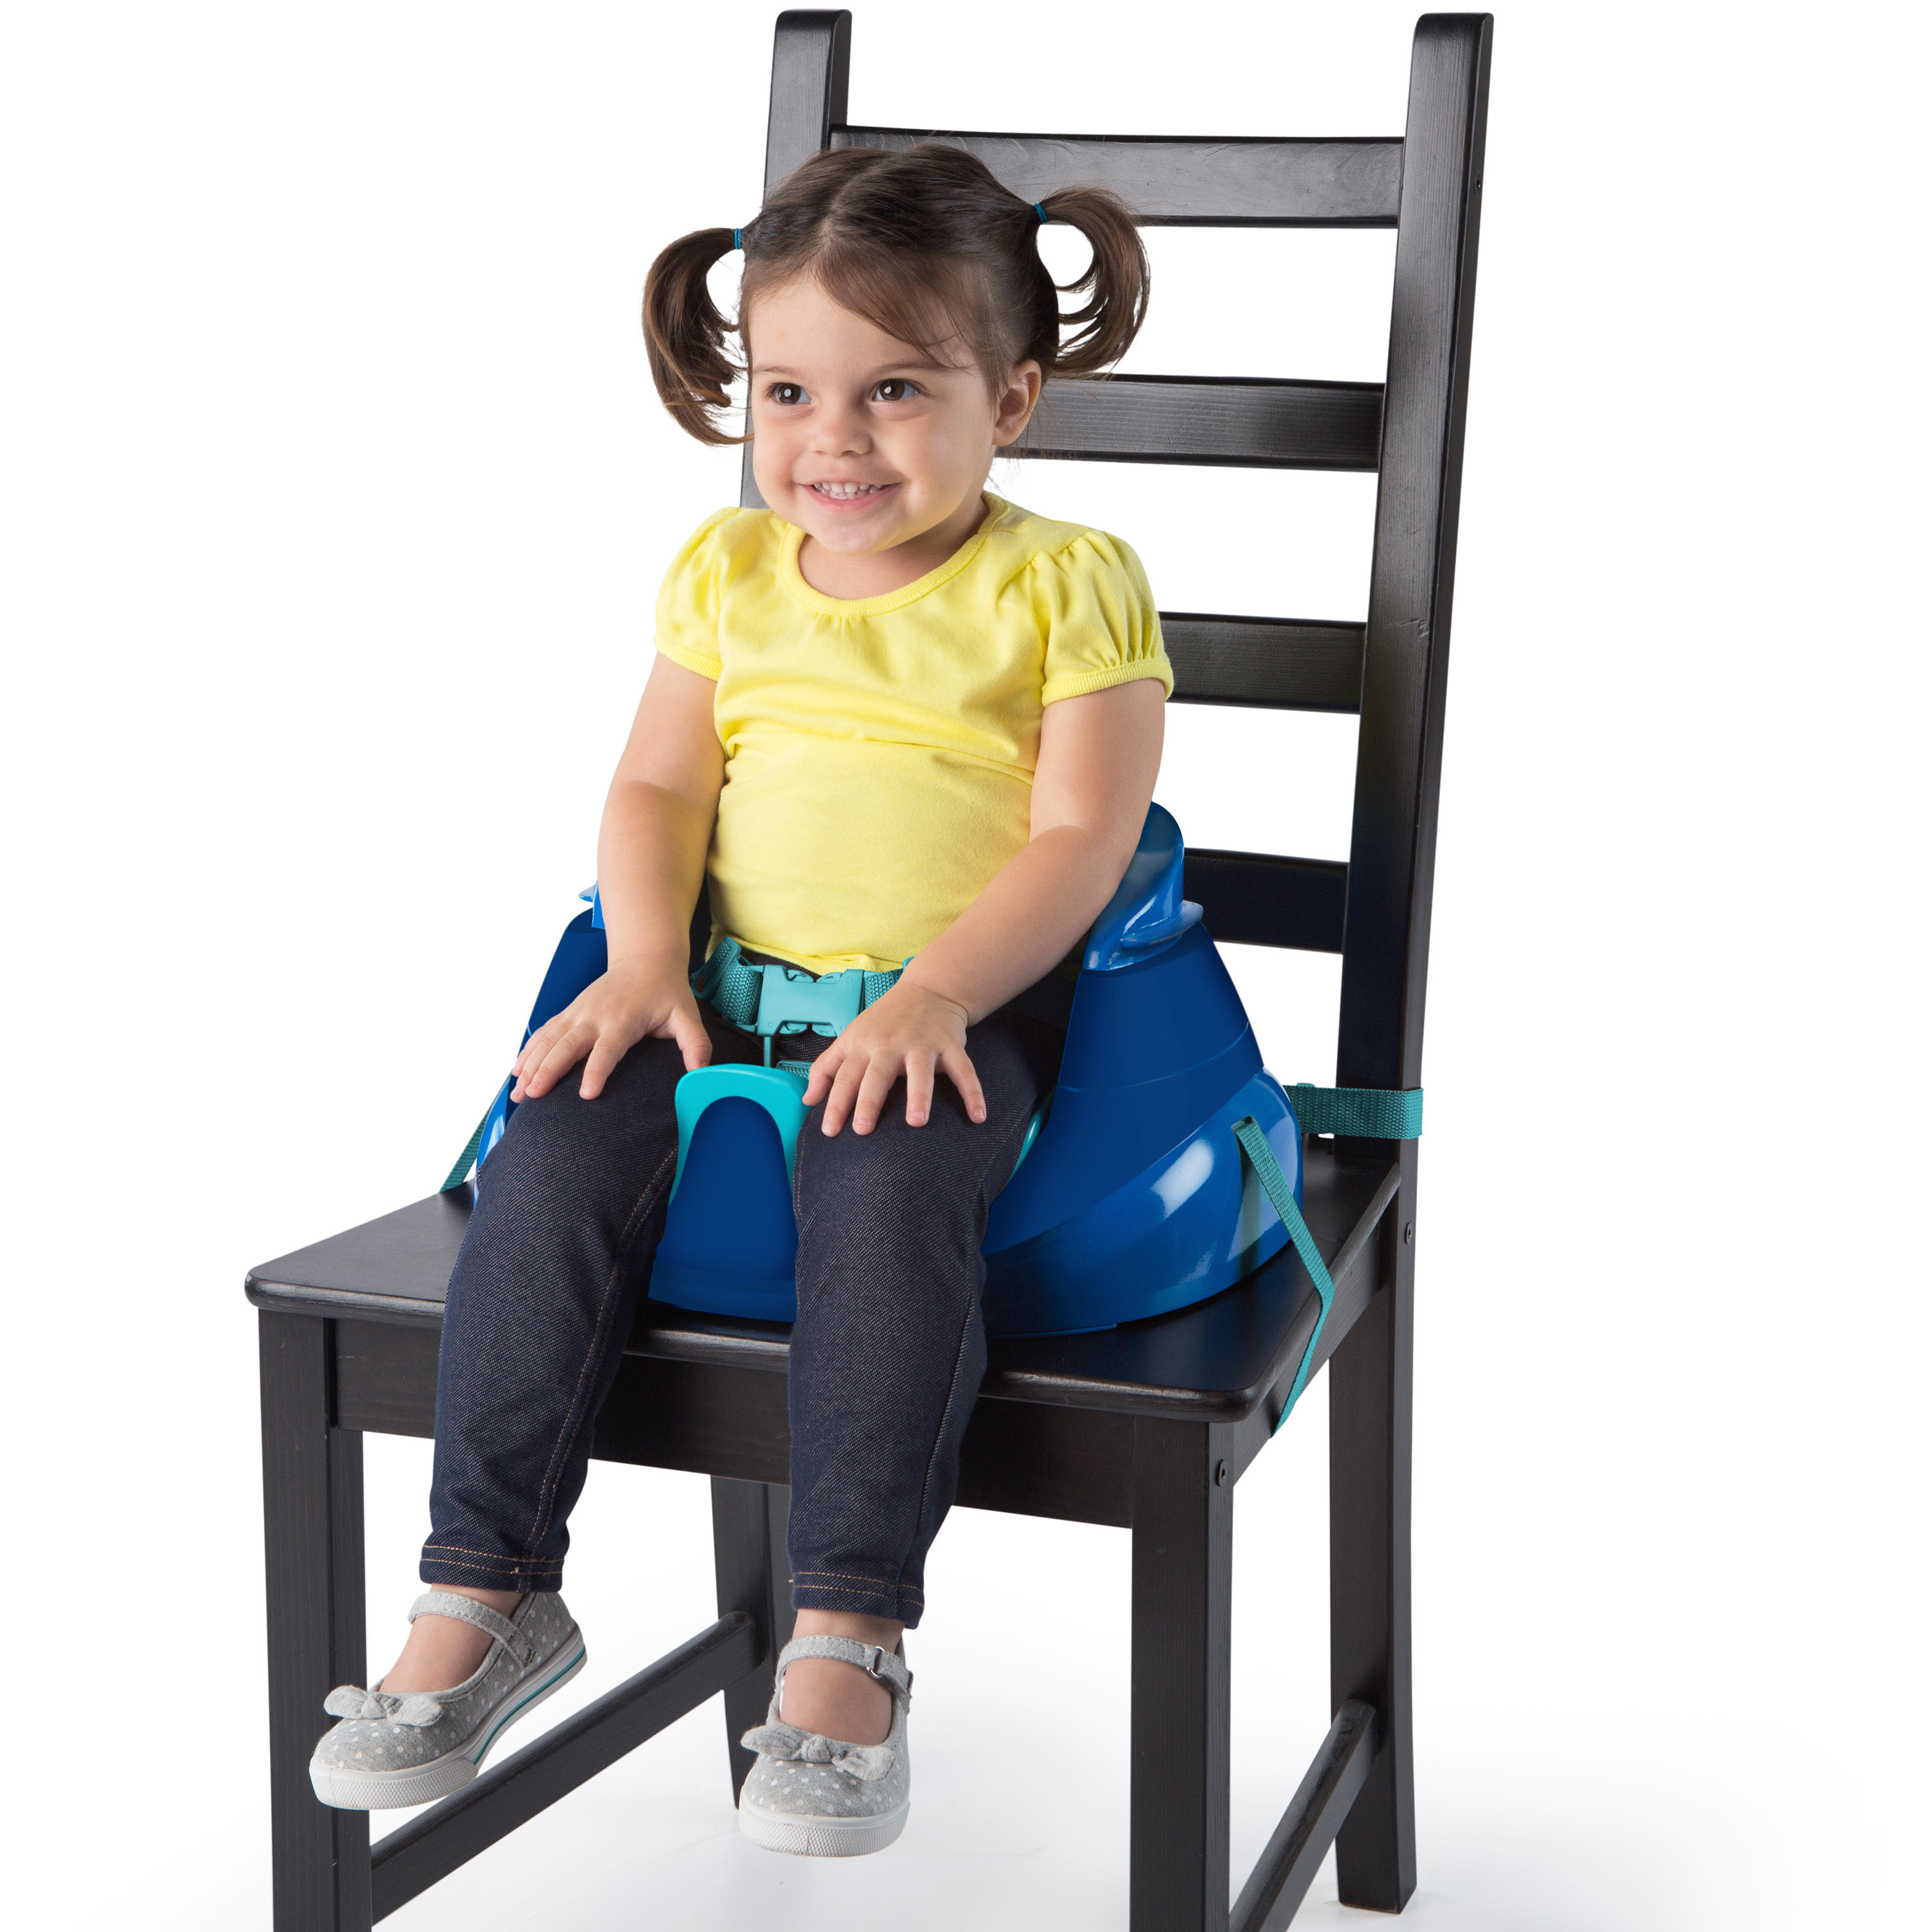 3-in-1 Snack & Discover Seat™